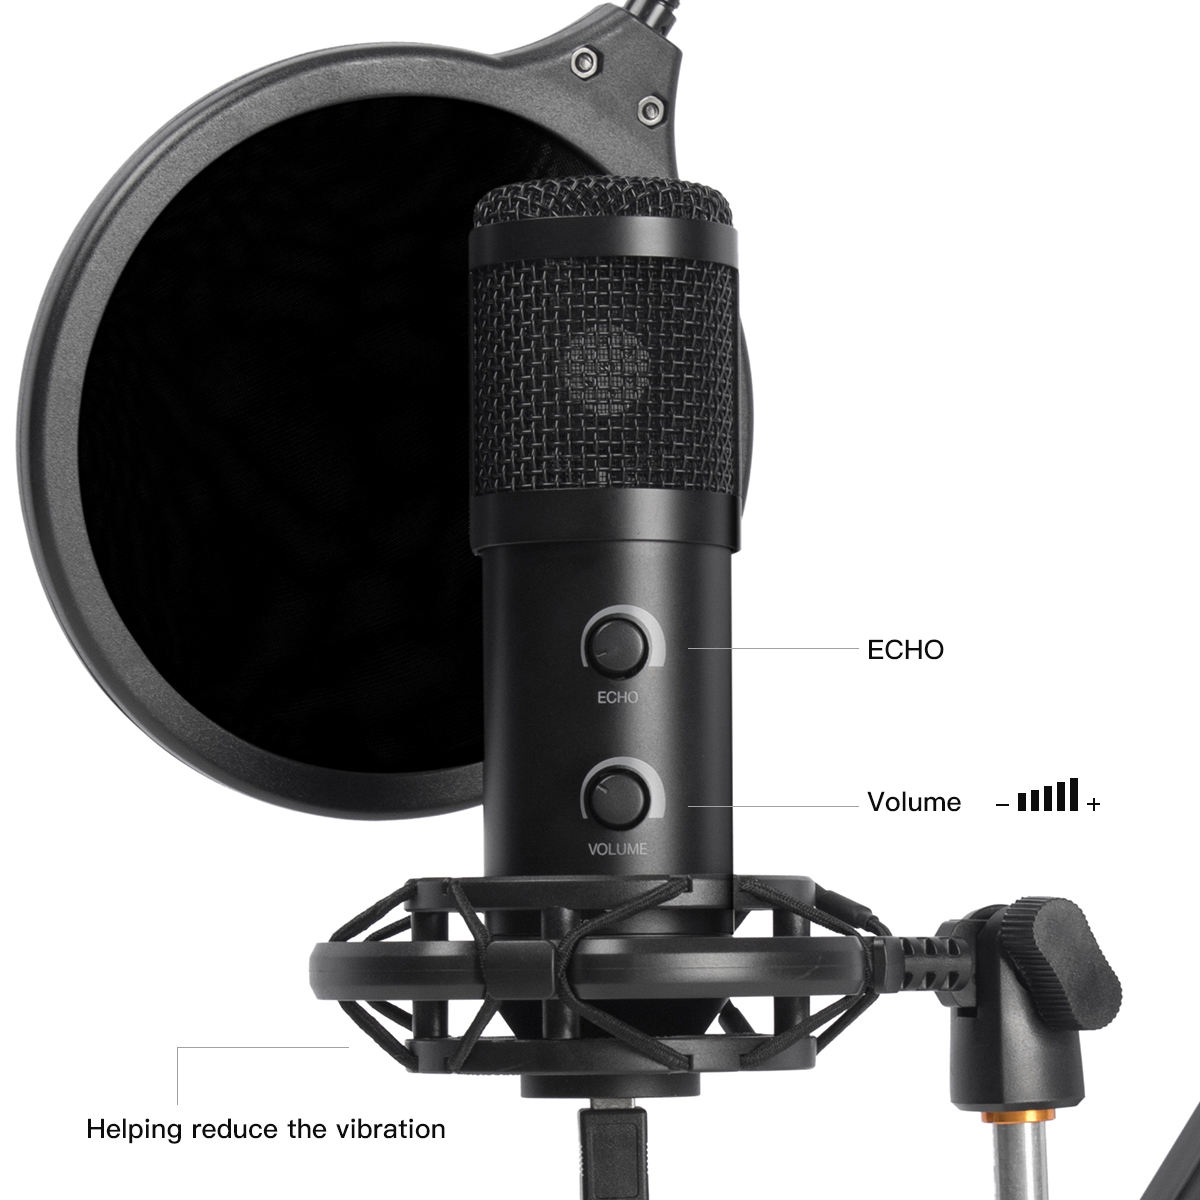 Flyday OEM Podcast Condenser Microphone T058B with Professional Sound Chipset for PC Karaoke, YouTube, Gaming Recording